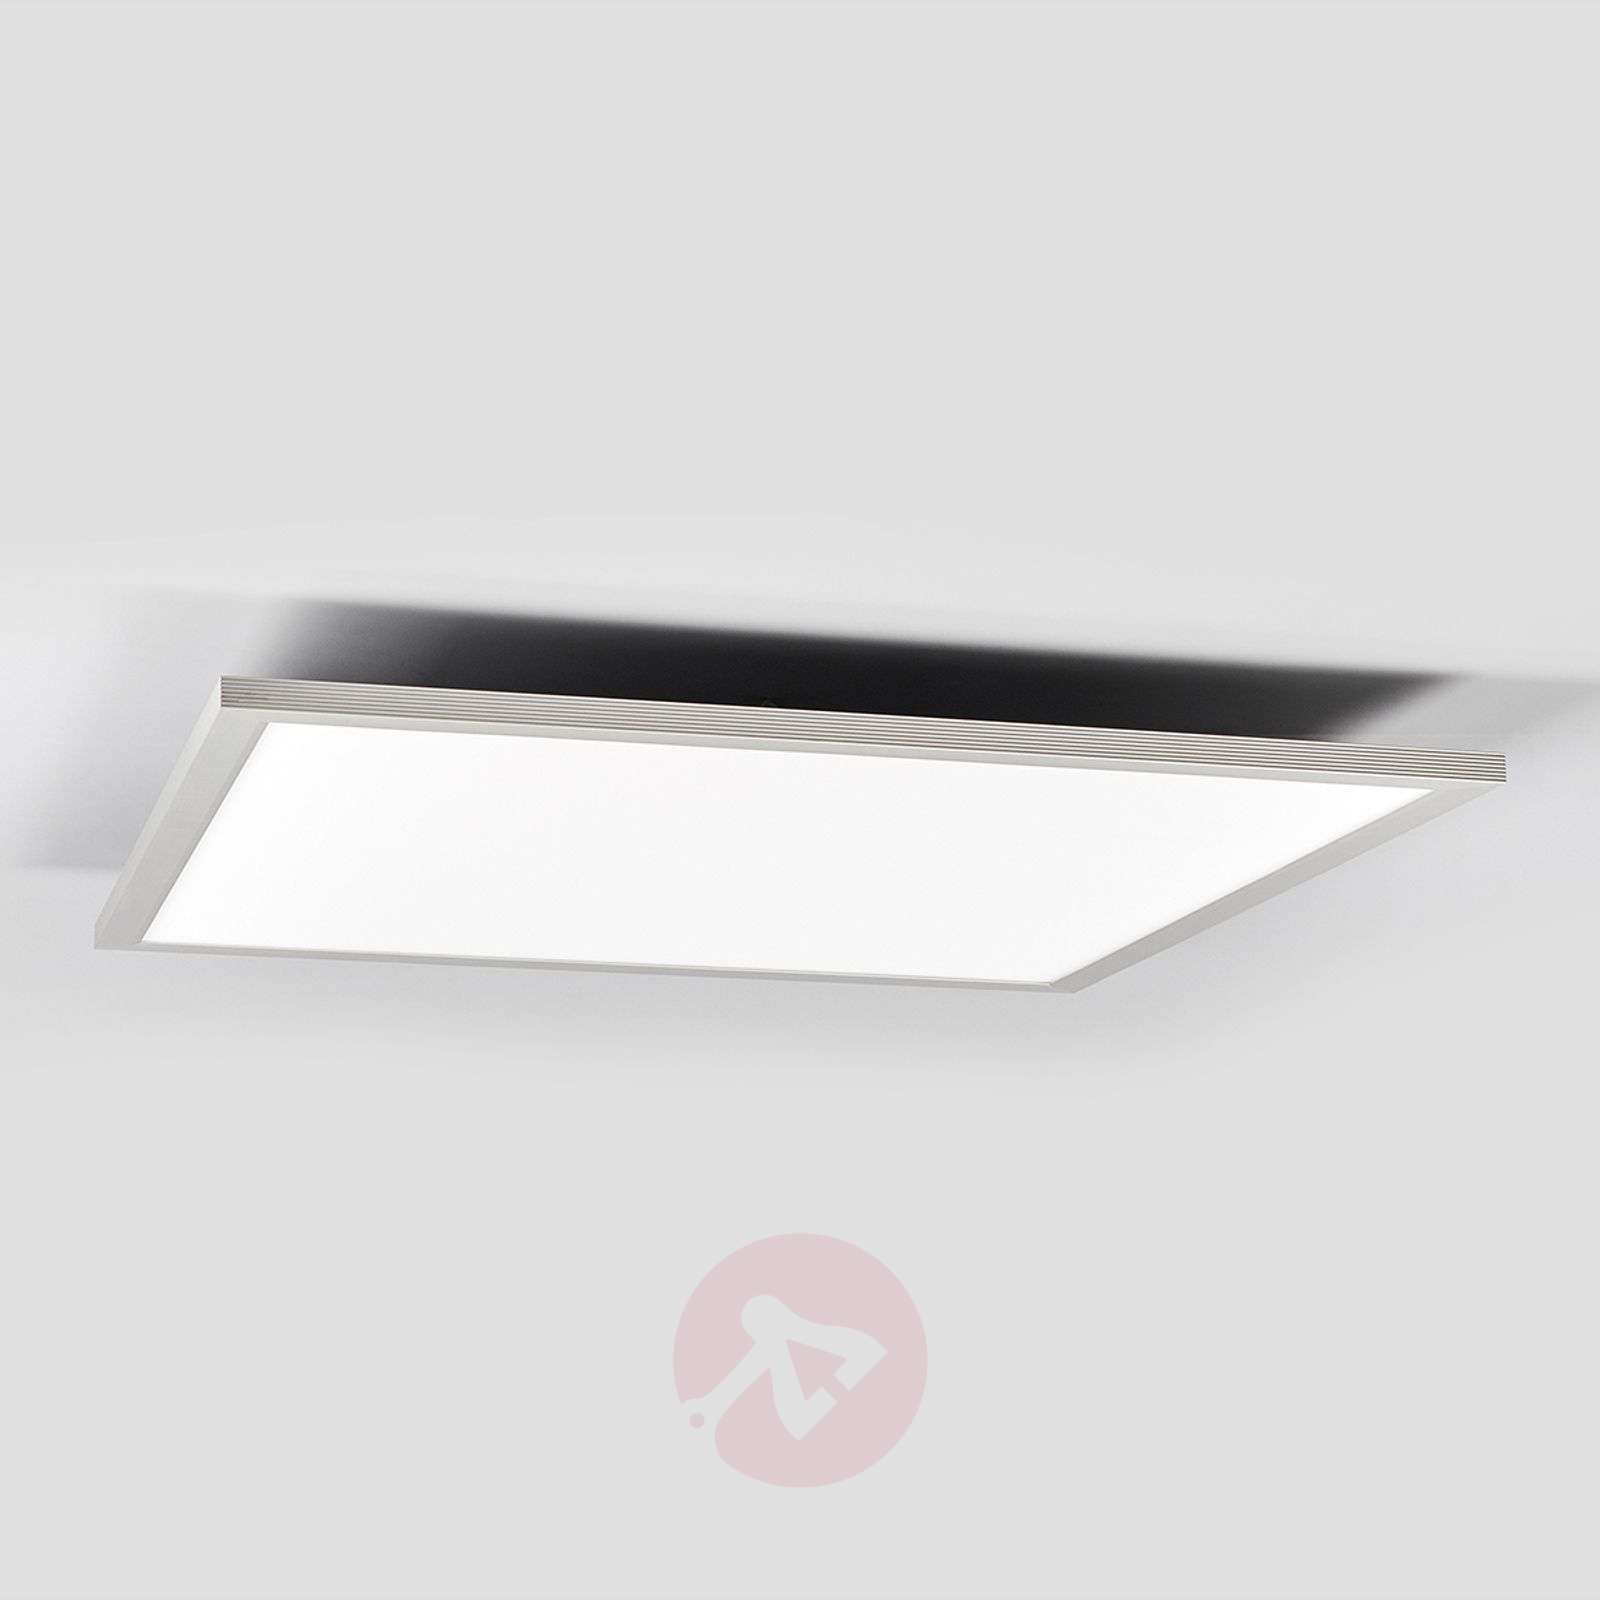 All-in-One-LED-paneeli Edge-3002134X-01